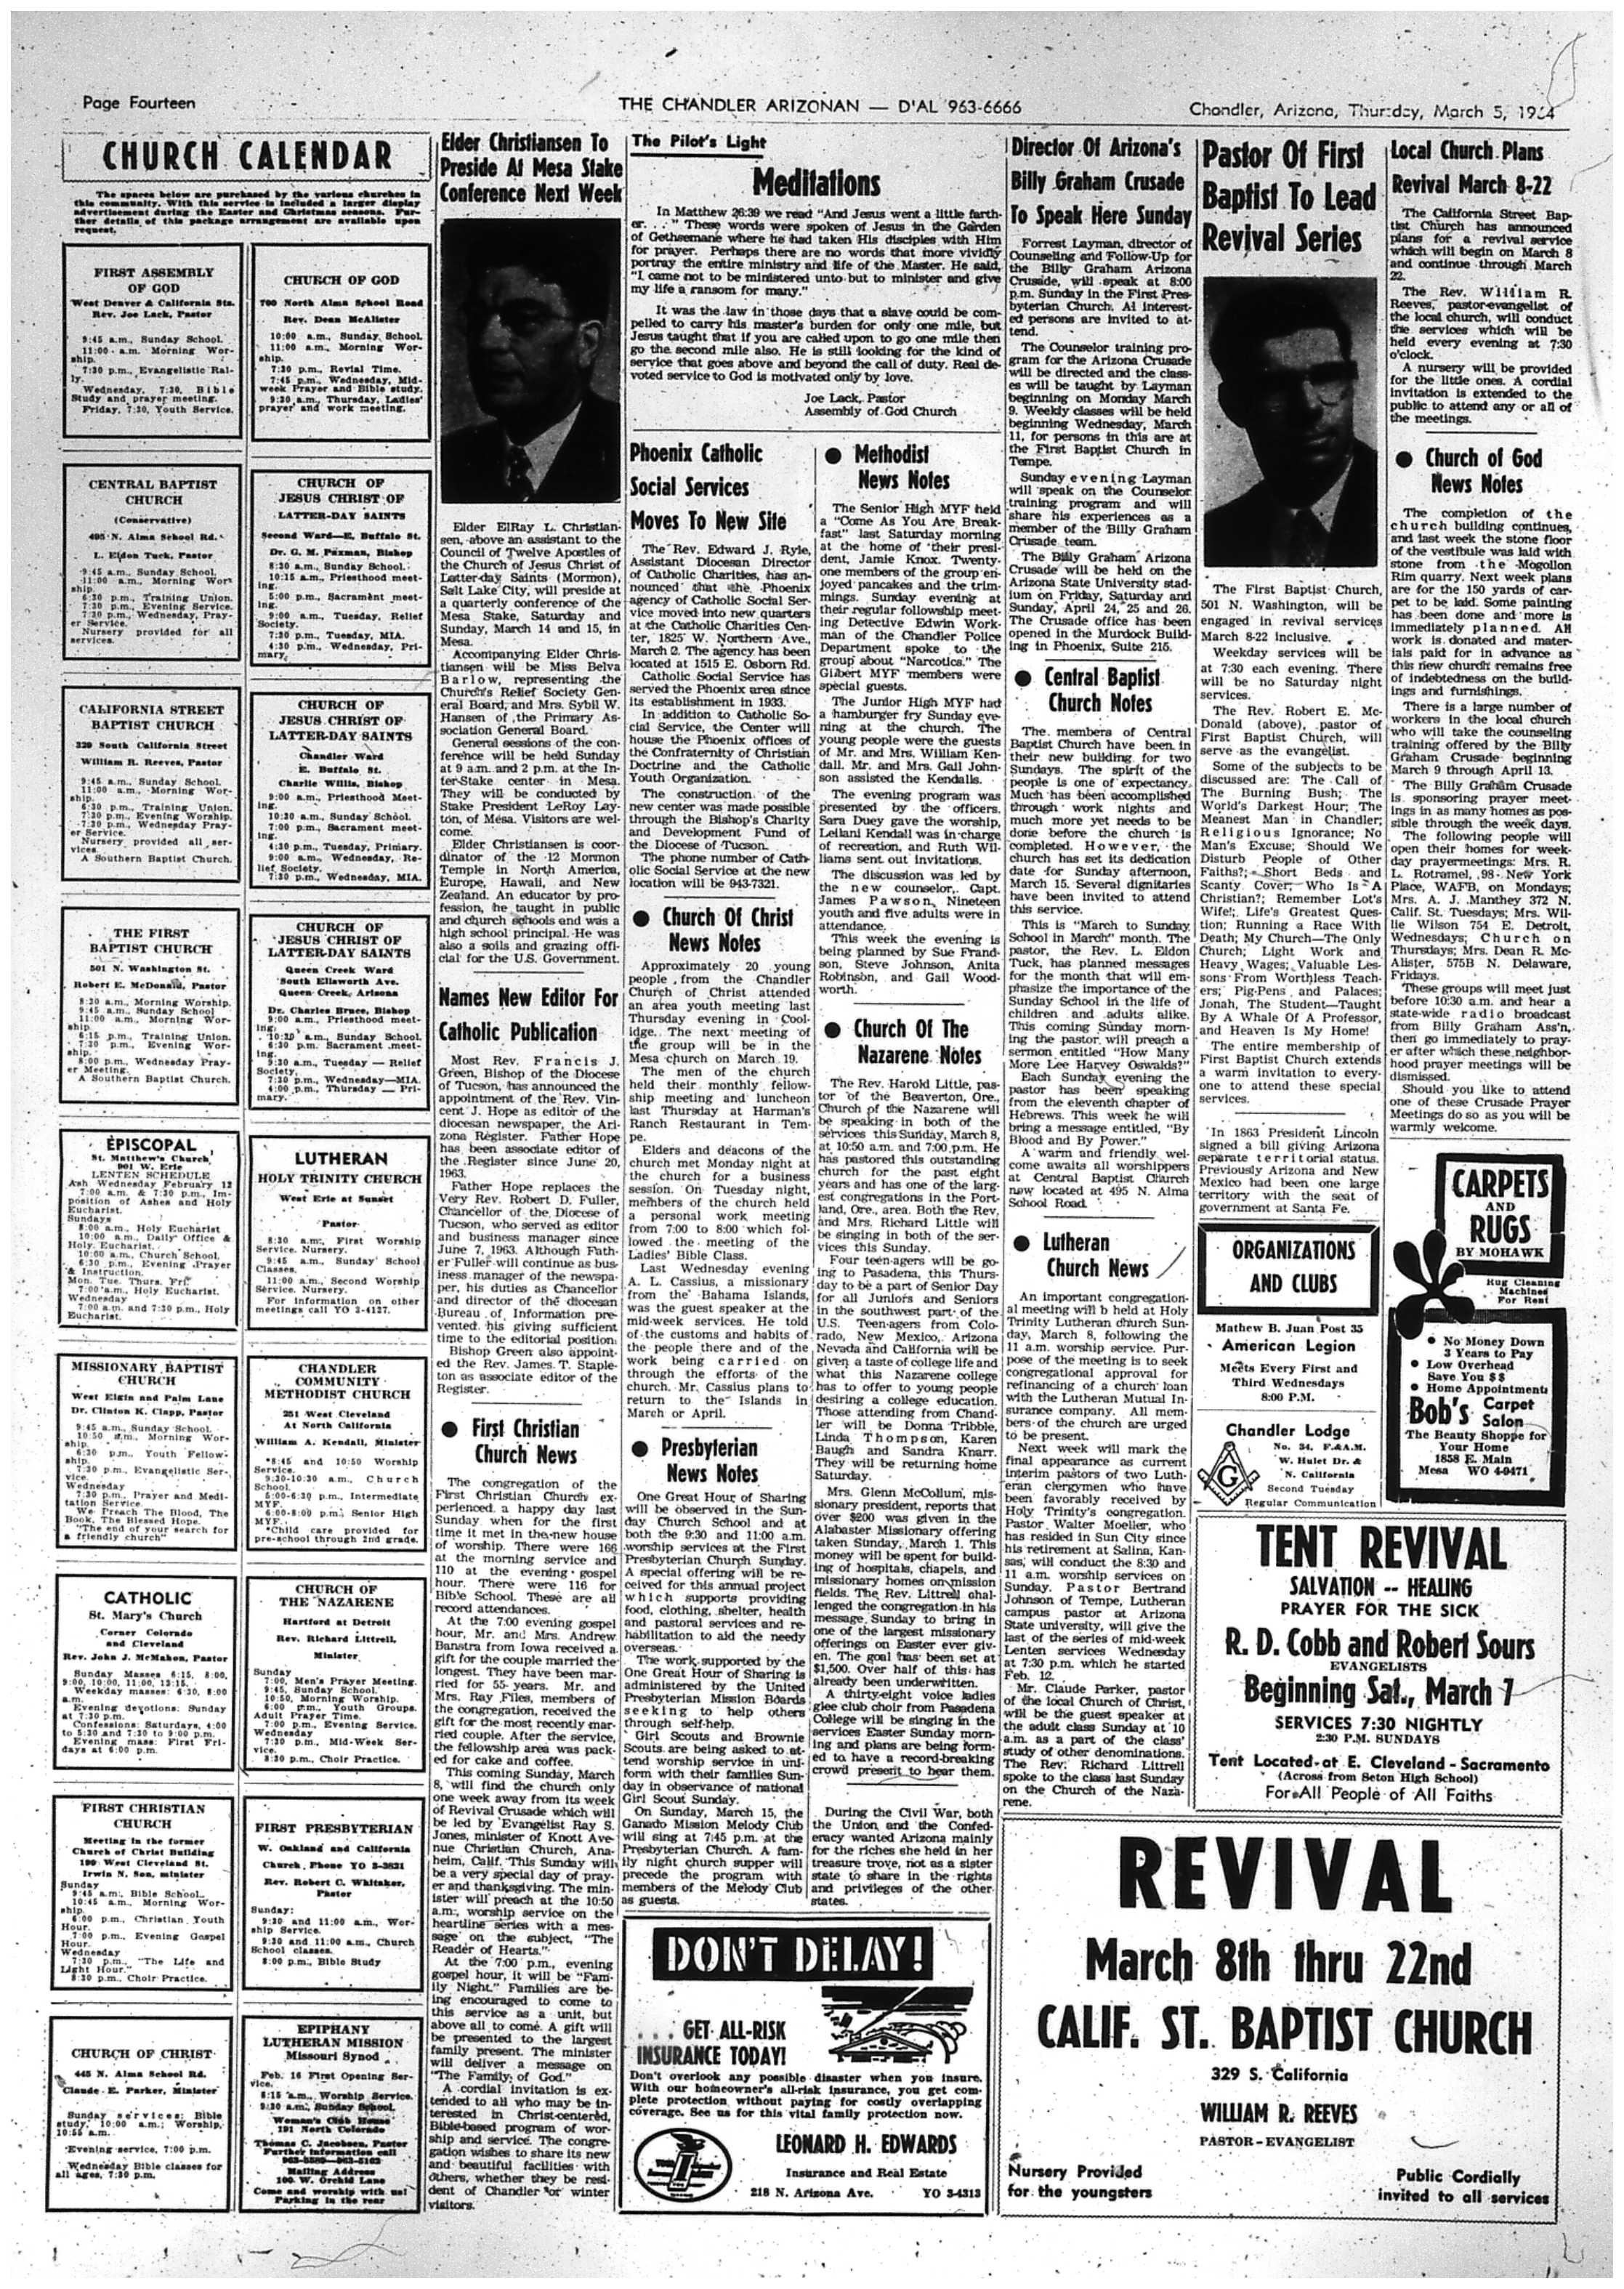 03-05-1964 - Page 14 .jpg